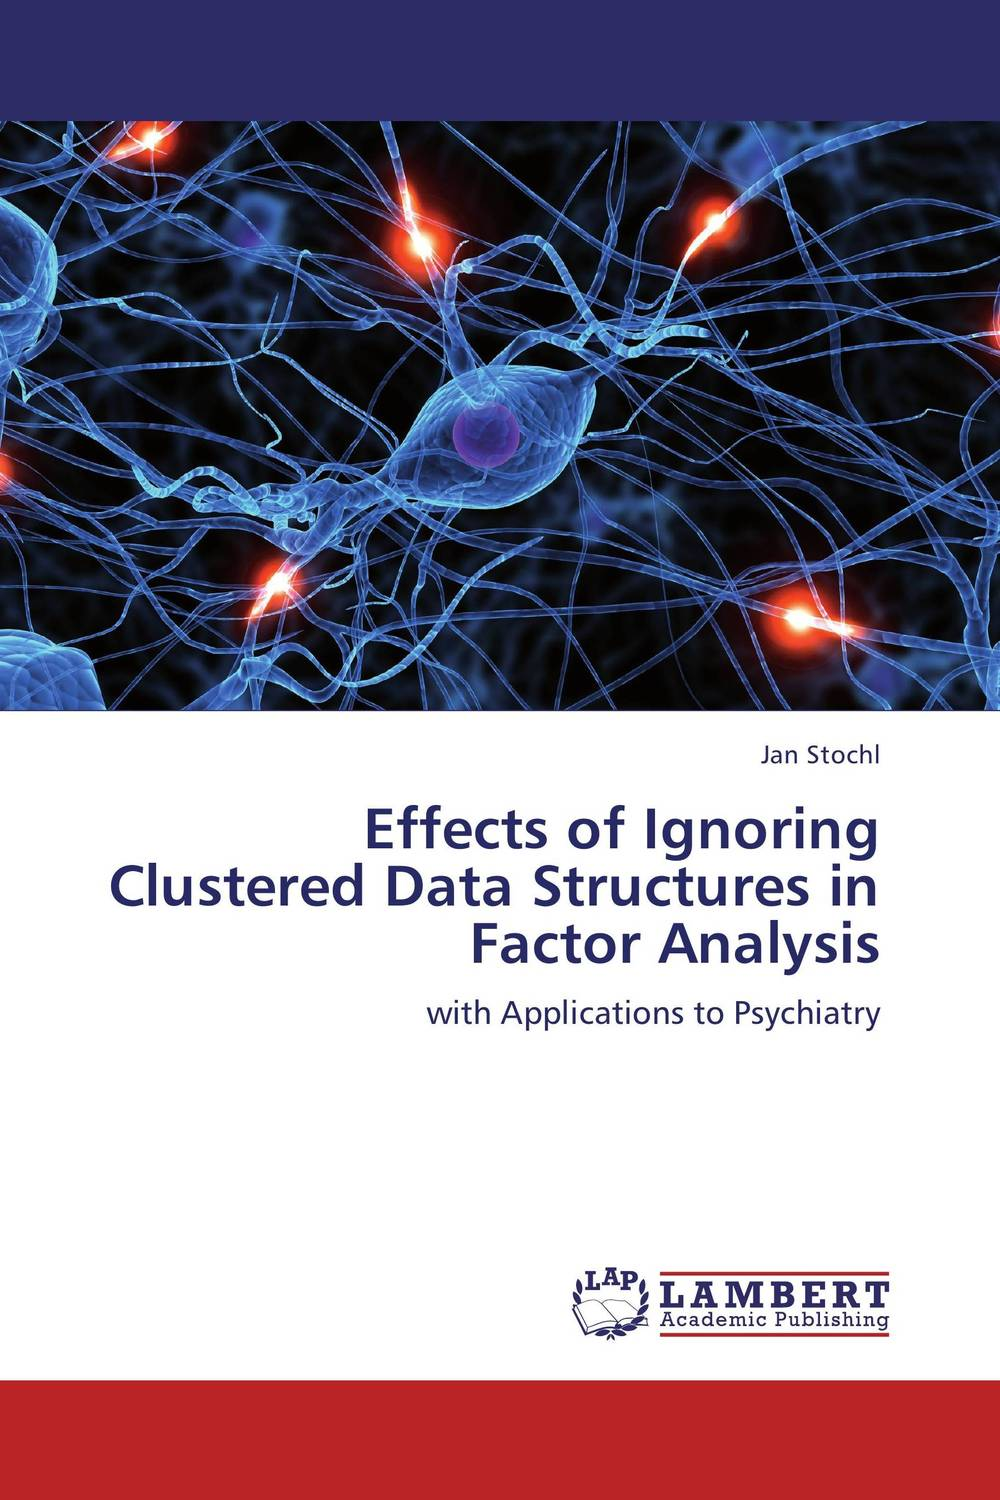 Effects of Ignoring Clustered Data Structures in Factor Analysis muhammad azeem development of math proficiency test using item response theory irt